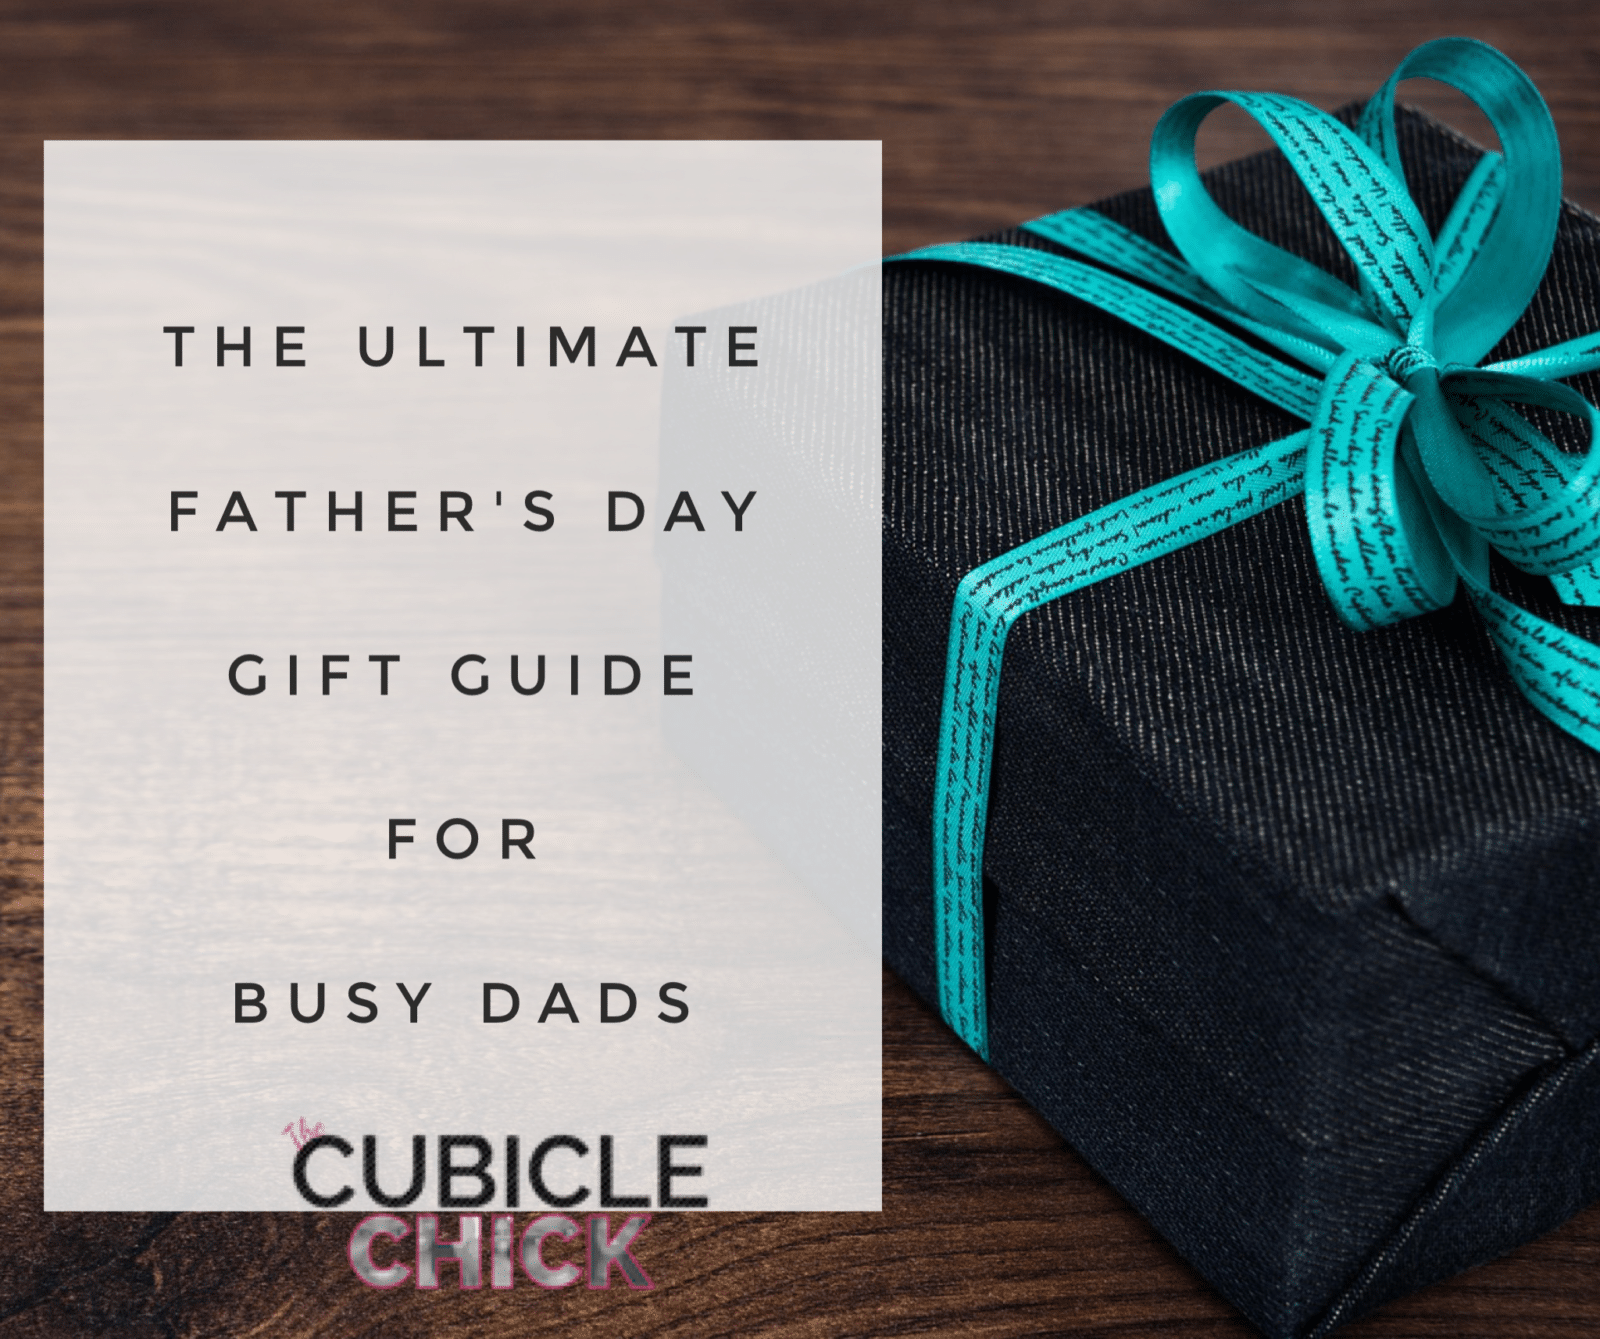 The Ultimate Father's Day Gift Guide for Busy Dads